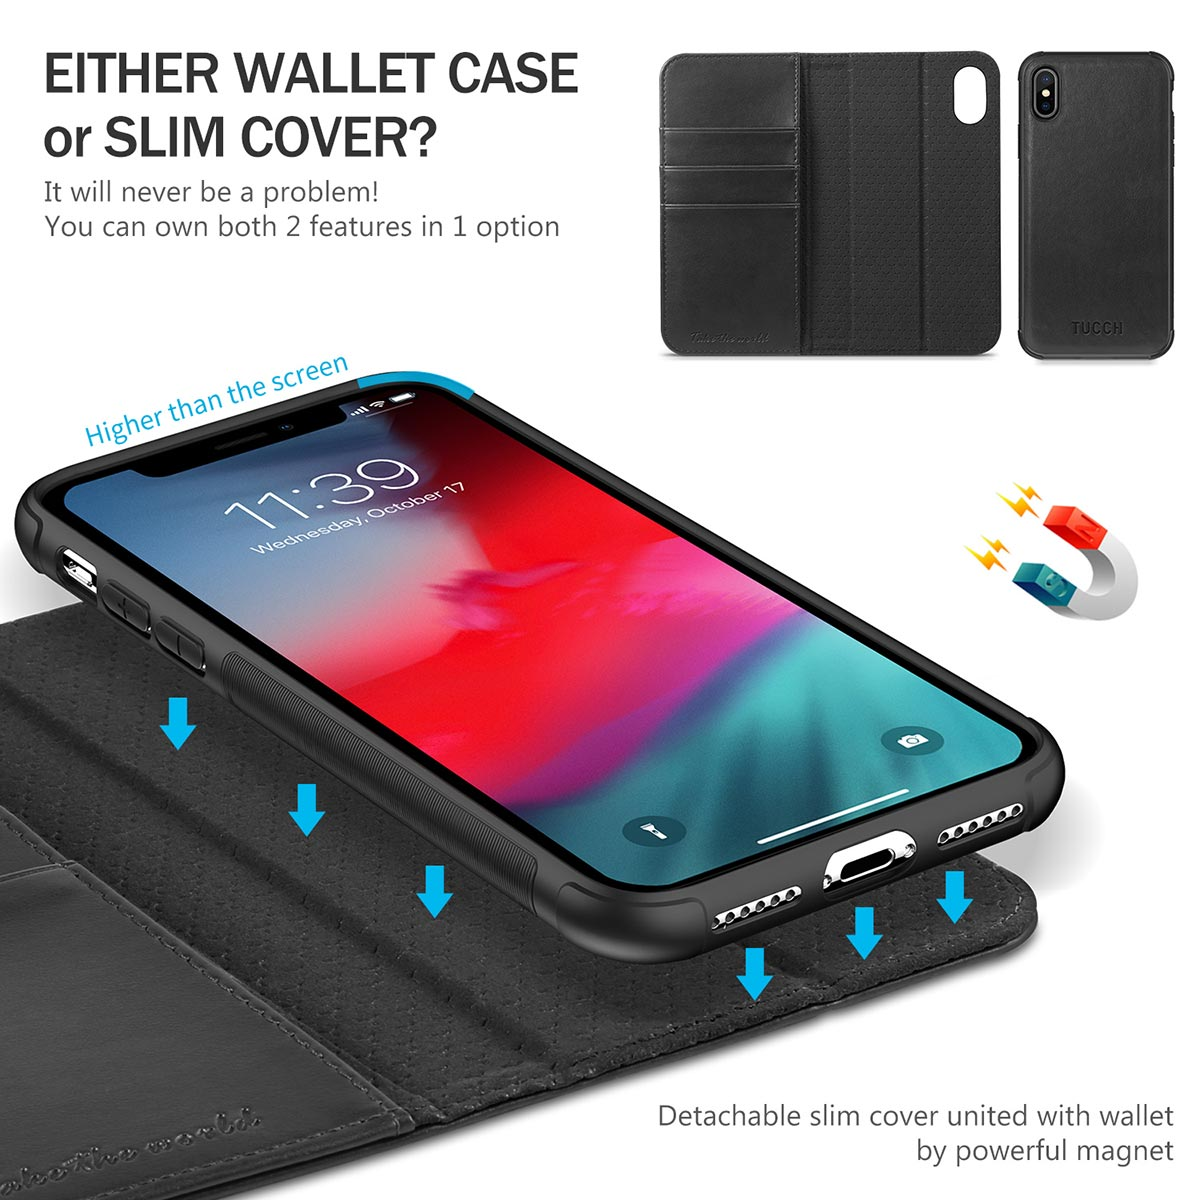 TUCCH 2IN1 Detachable Cover Leather Wallet Case for iPhone X/10, Auto Sleep/Wake, Magnetic Closure, support wireless charging